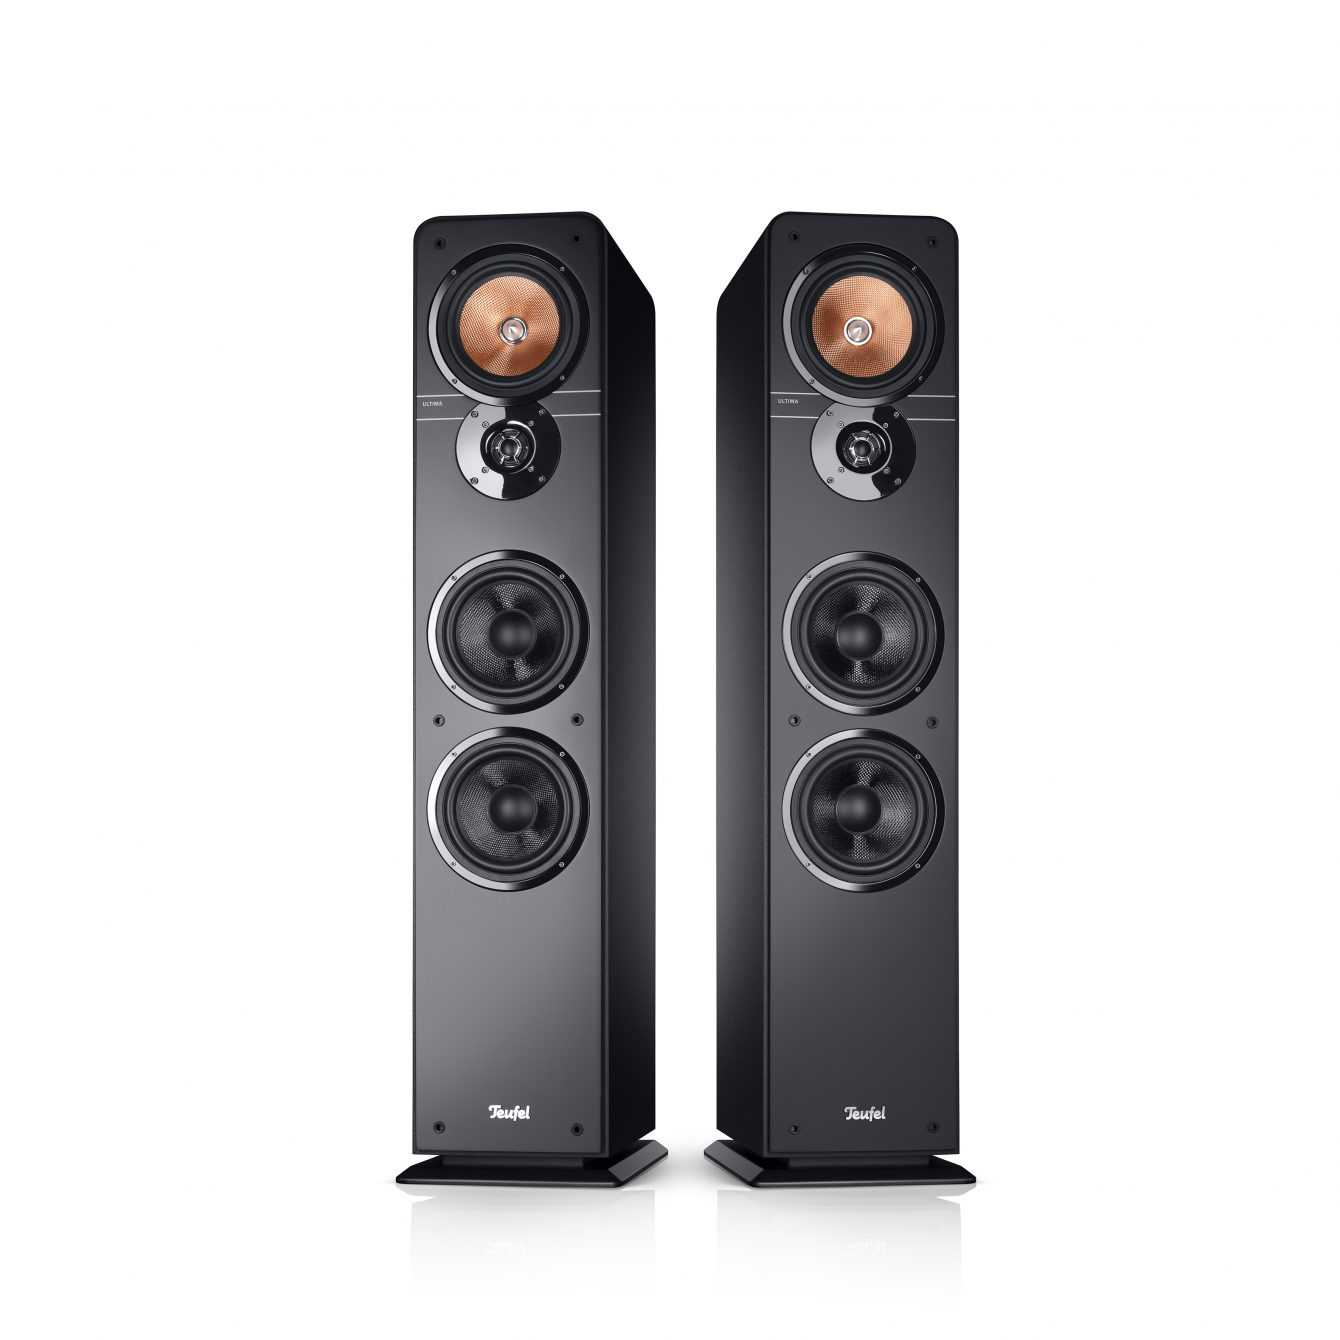 Teufel: special offer products for Father's Day